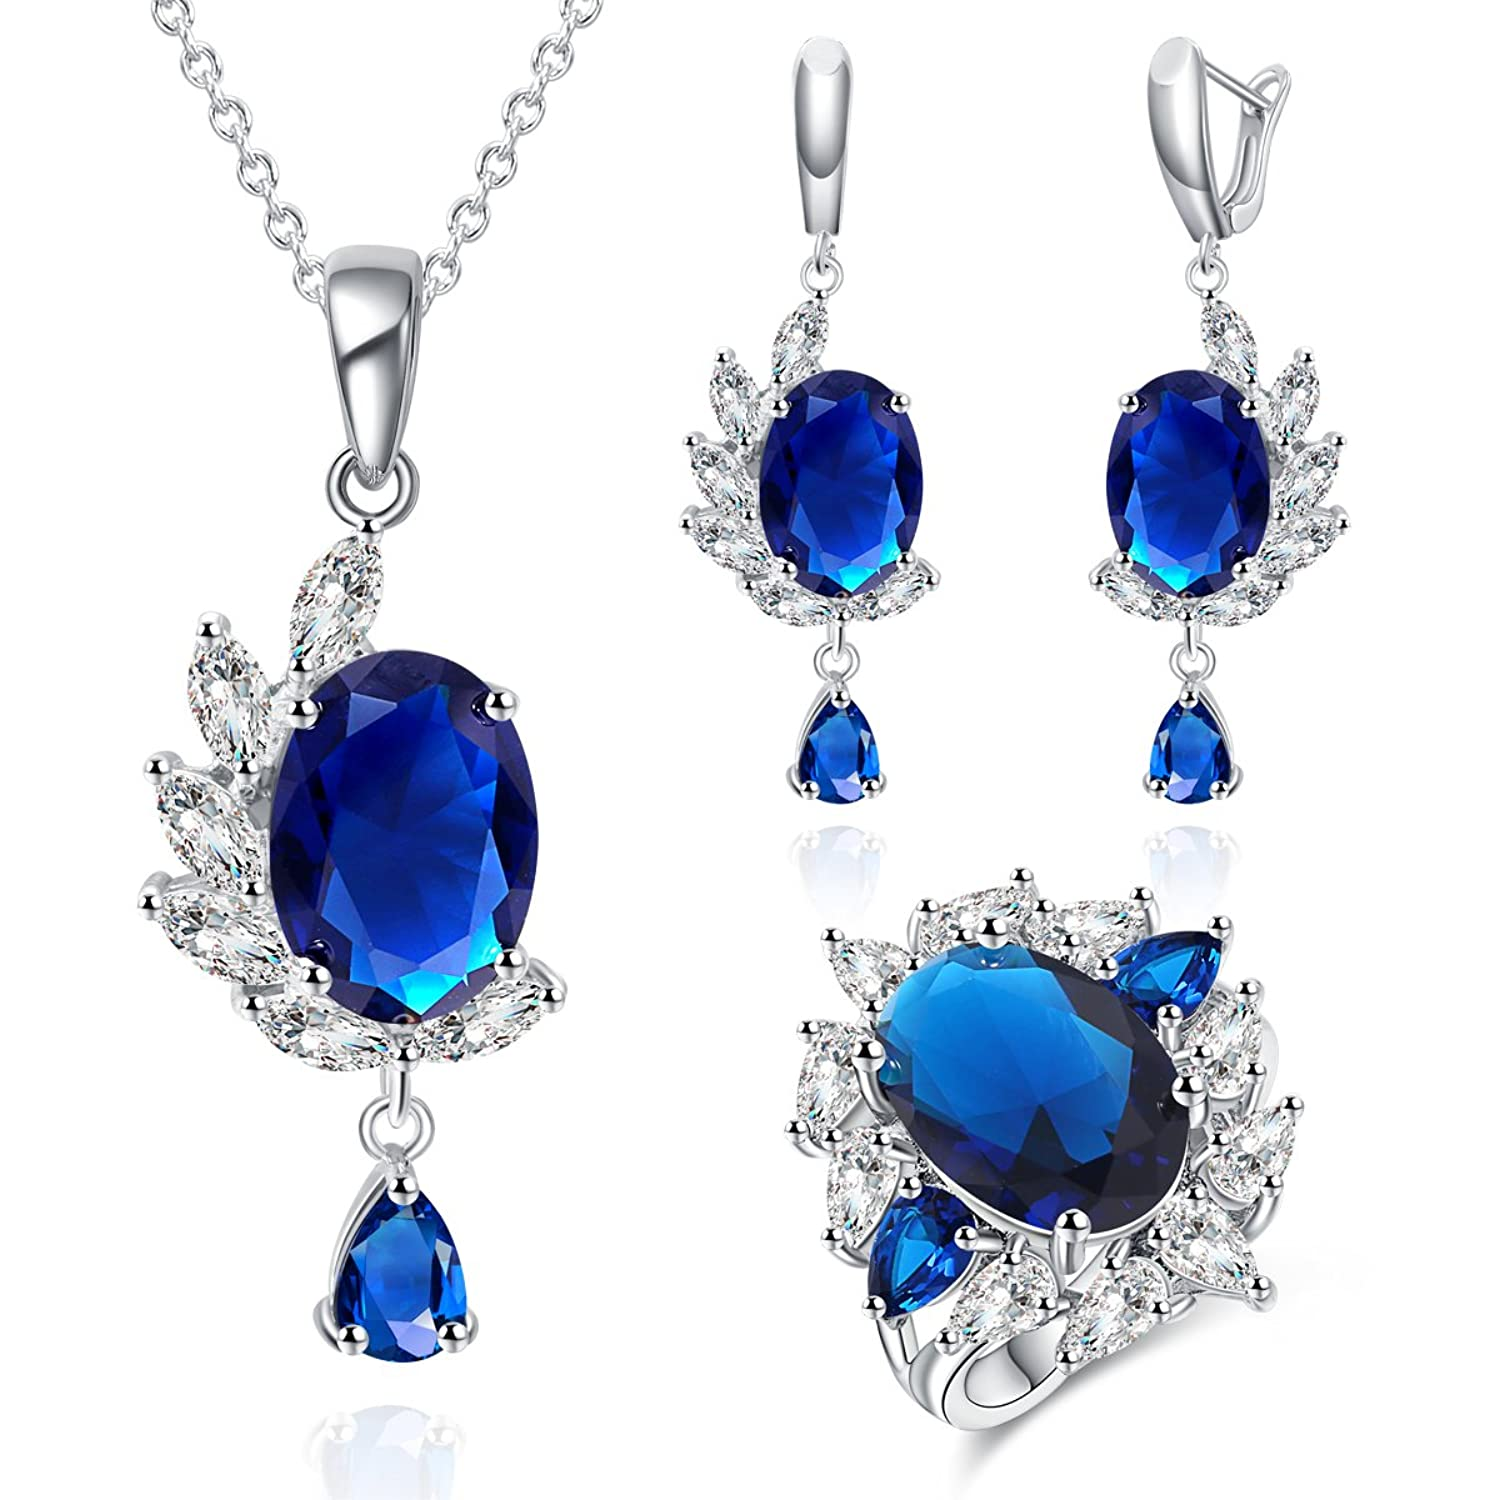 Luxury Ladies Jewelry Sets Cubic Zirconia Rhodium Plated Oval Necklace Earring Ring Sets Dark Blue Color